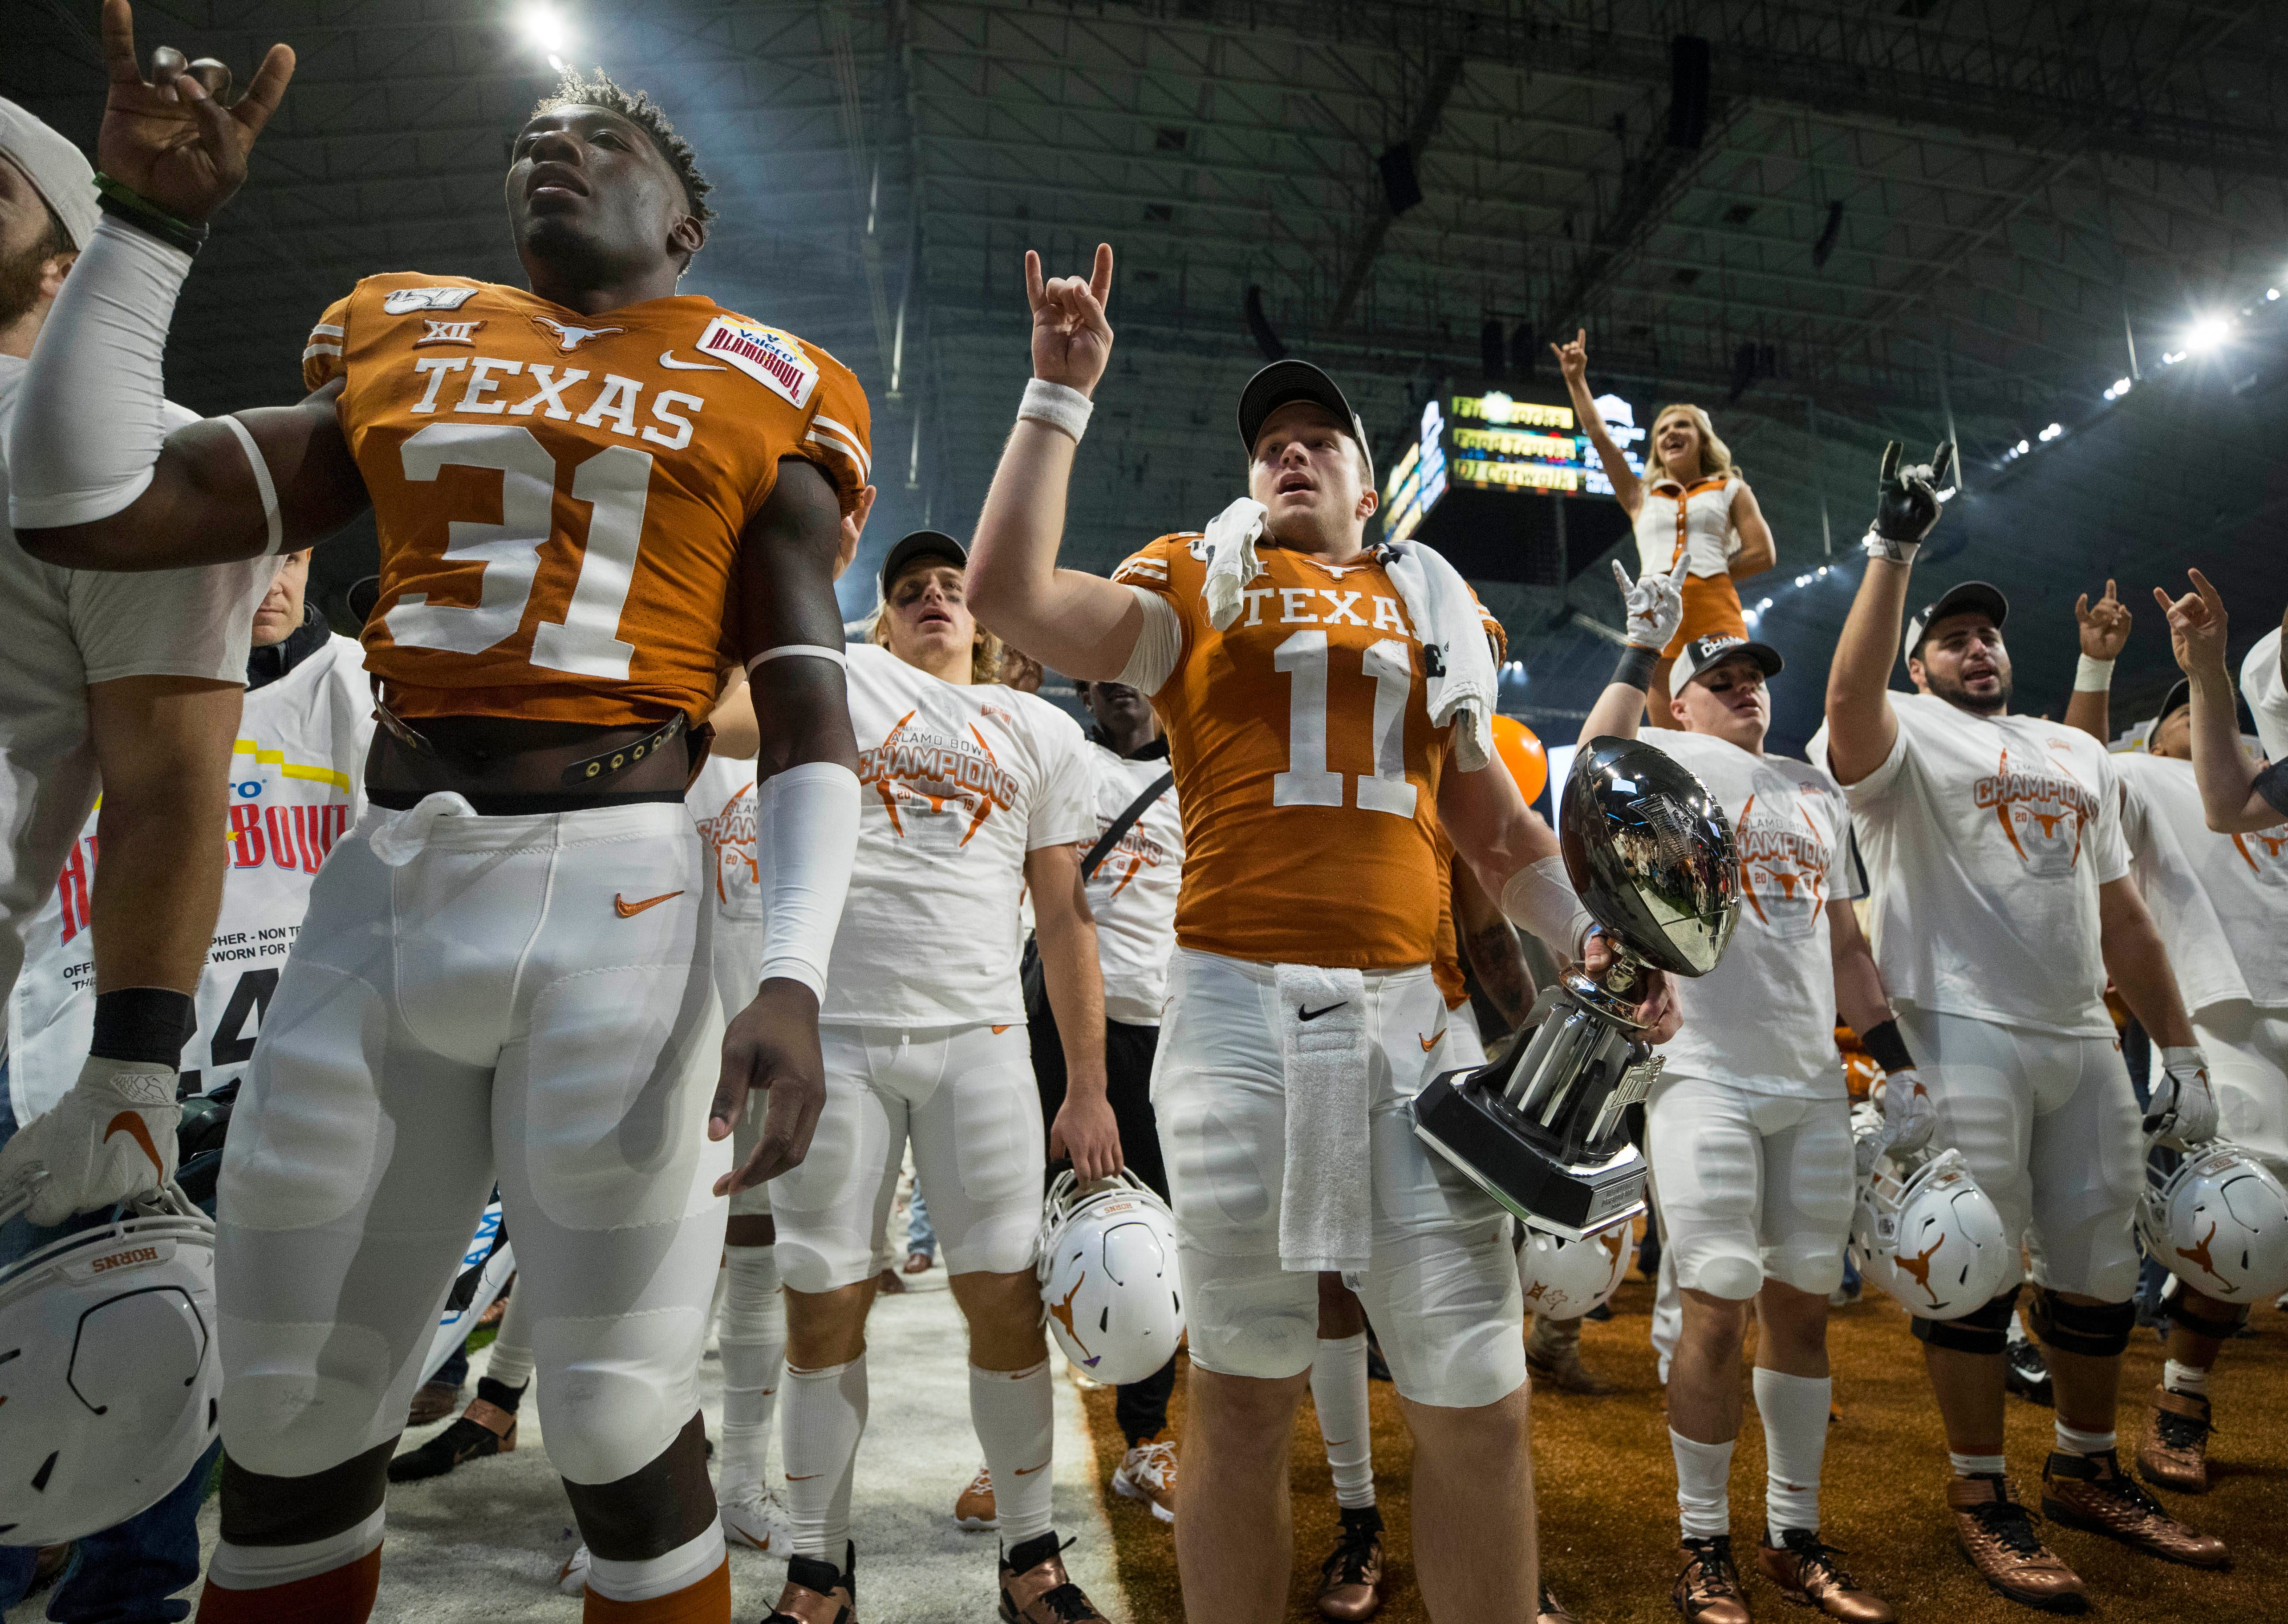 Tom Herman: No mandate forcing Texas players to stay on field for playing of 'The Eyes of Texas'